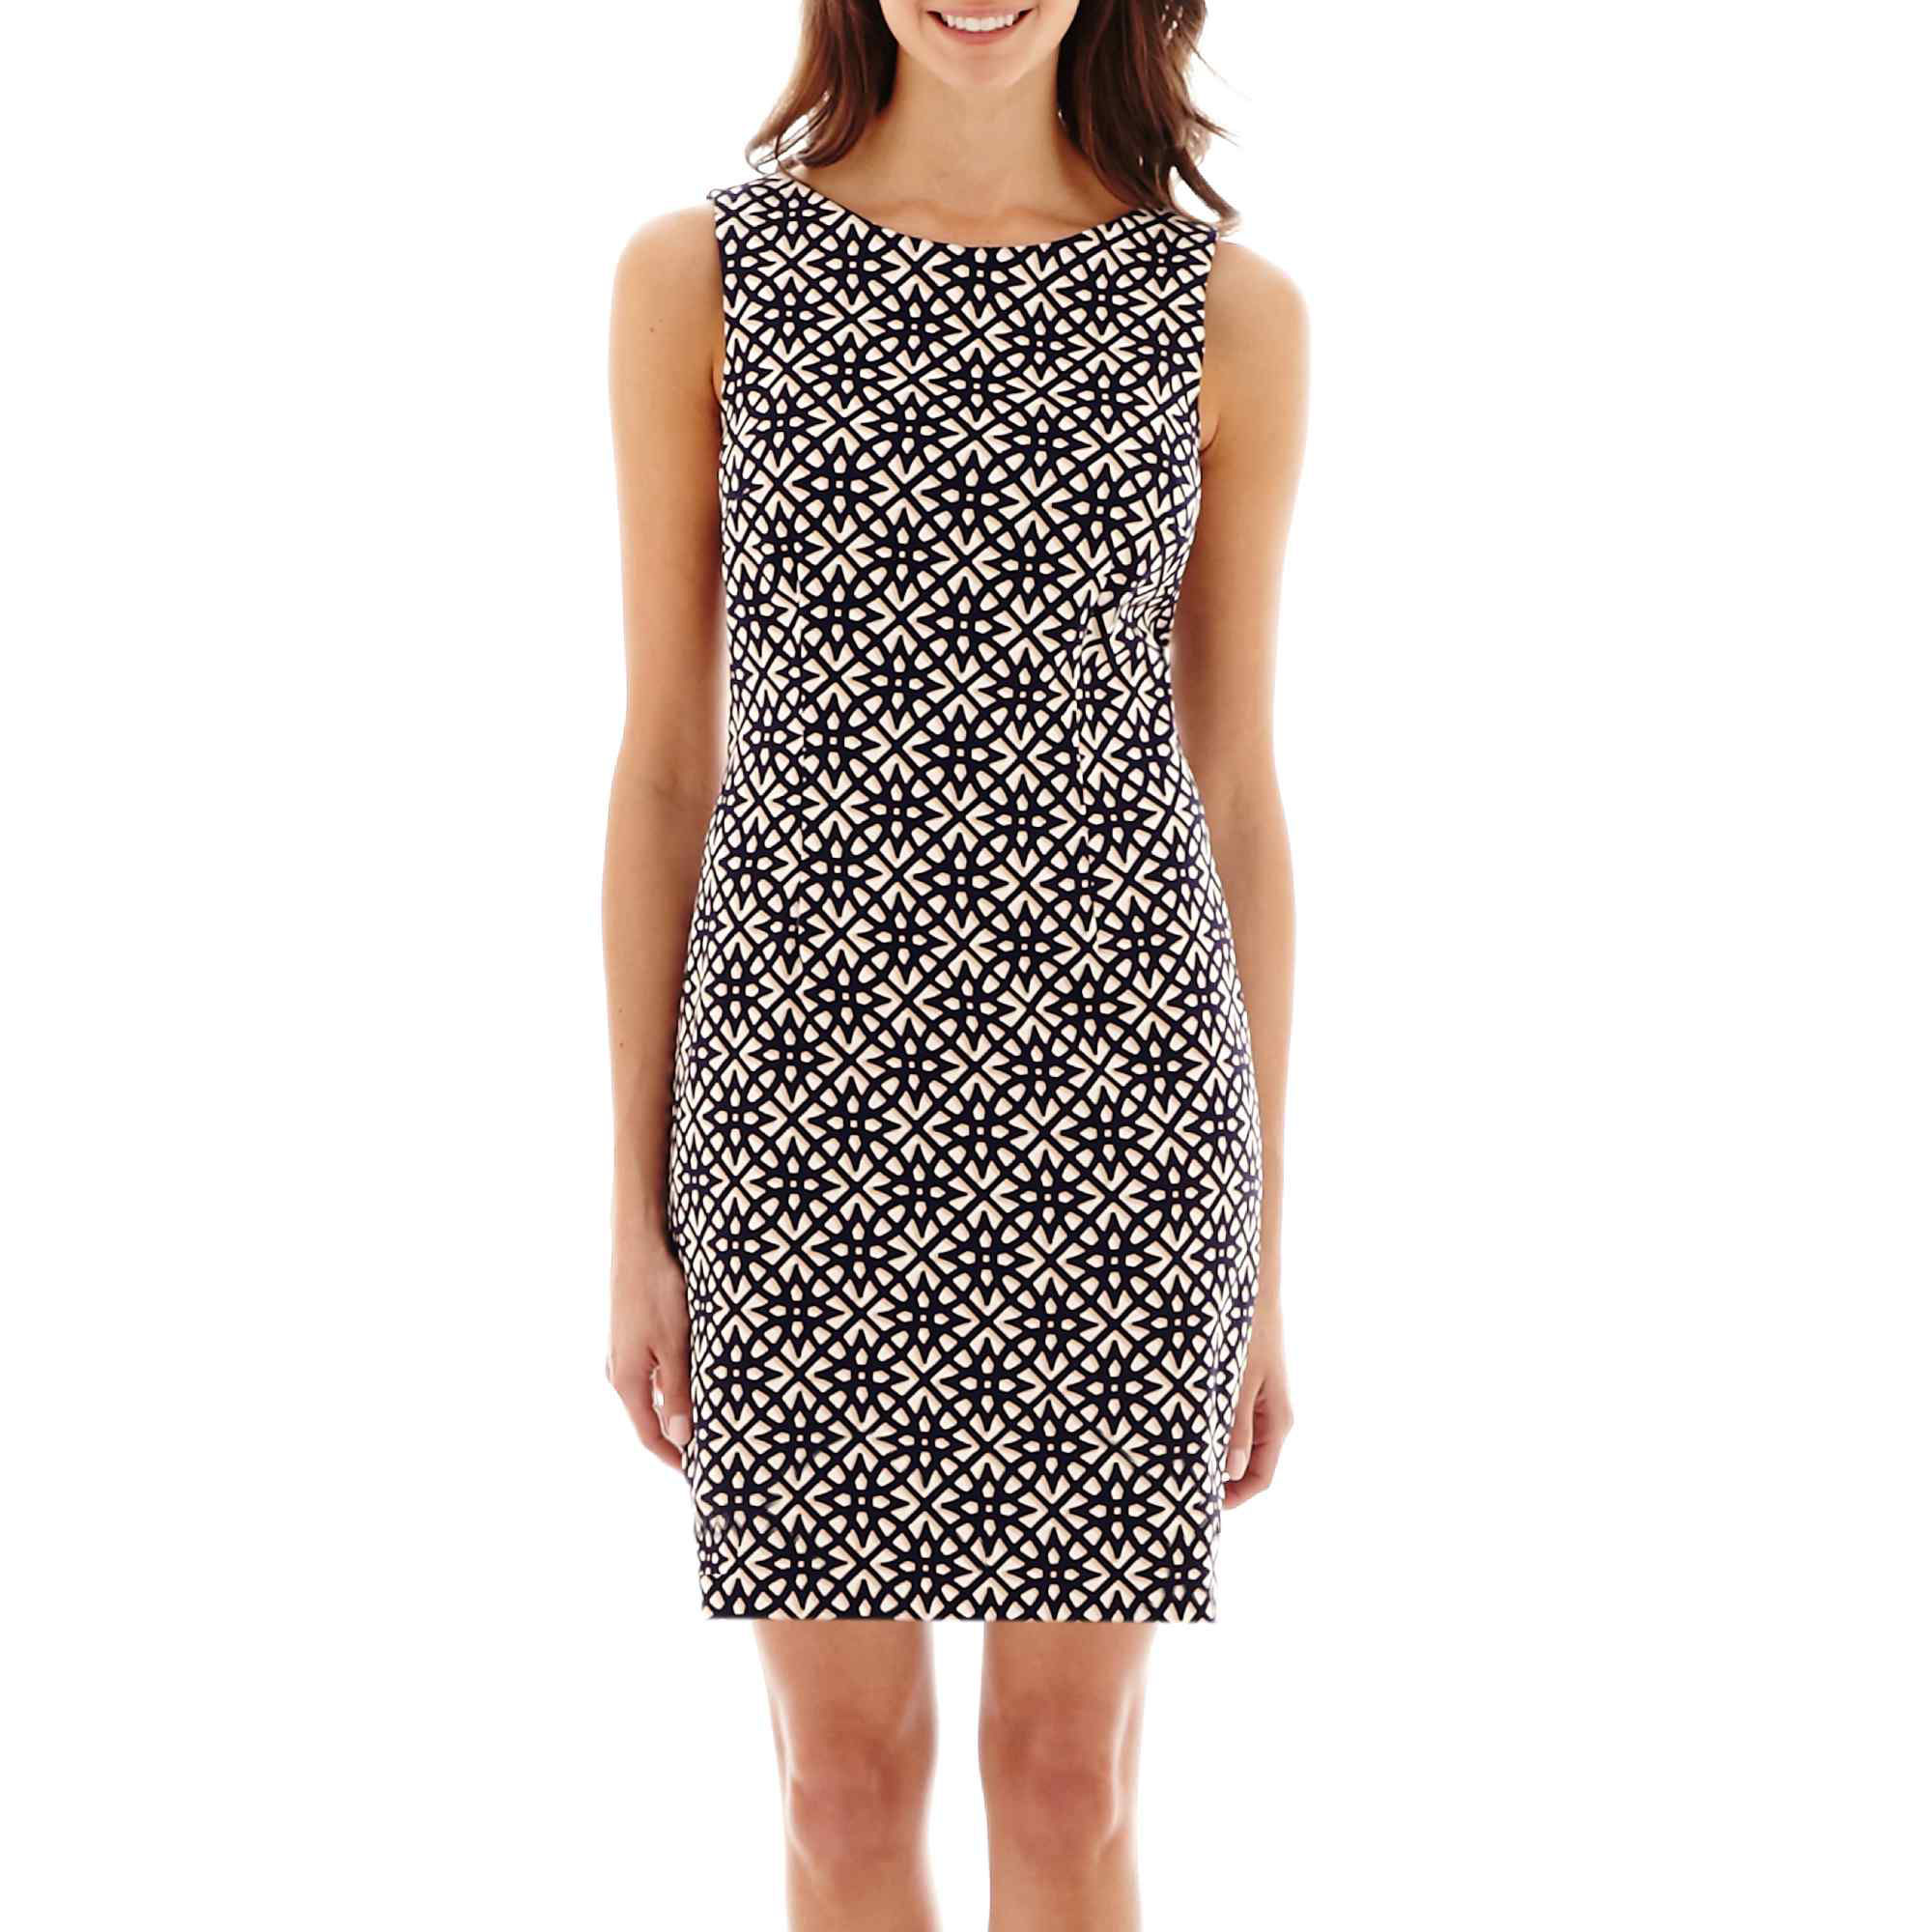 Alyx Sleeveless Sheath Dress - Petite